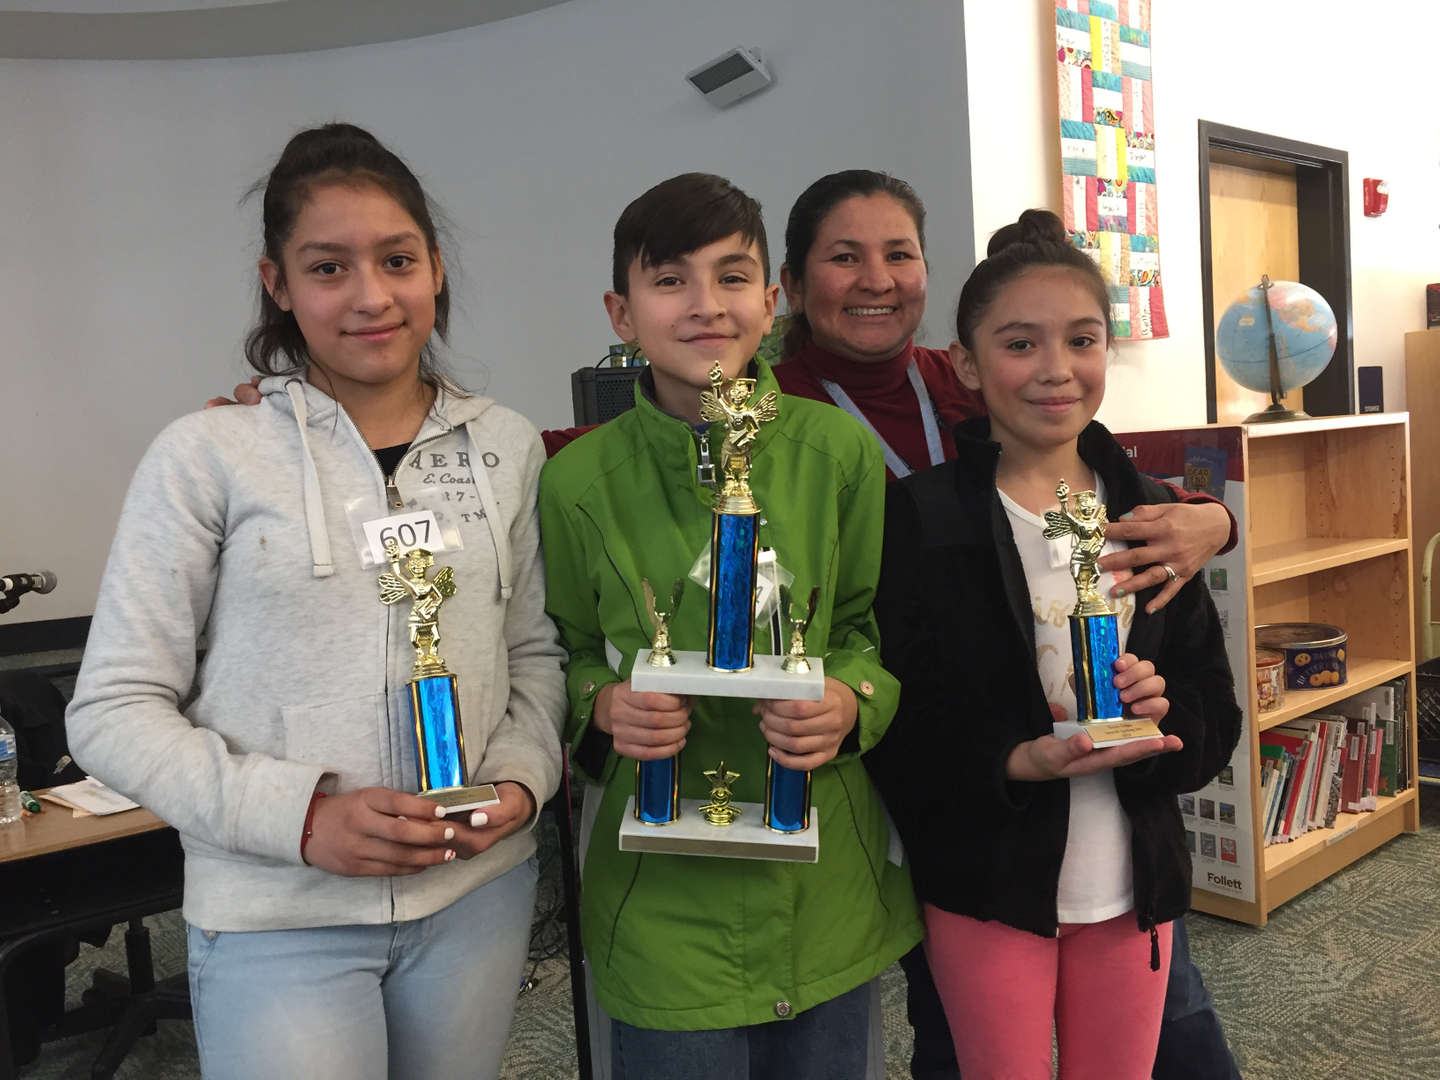 students with trophies and teacher